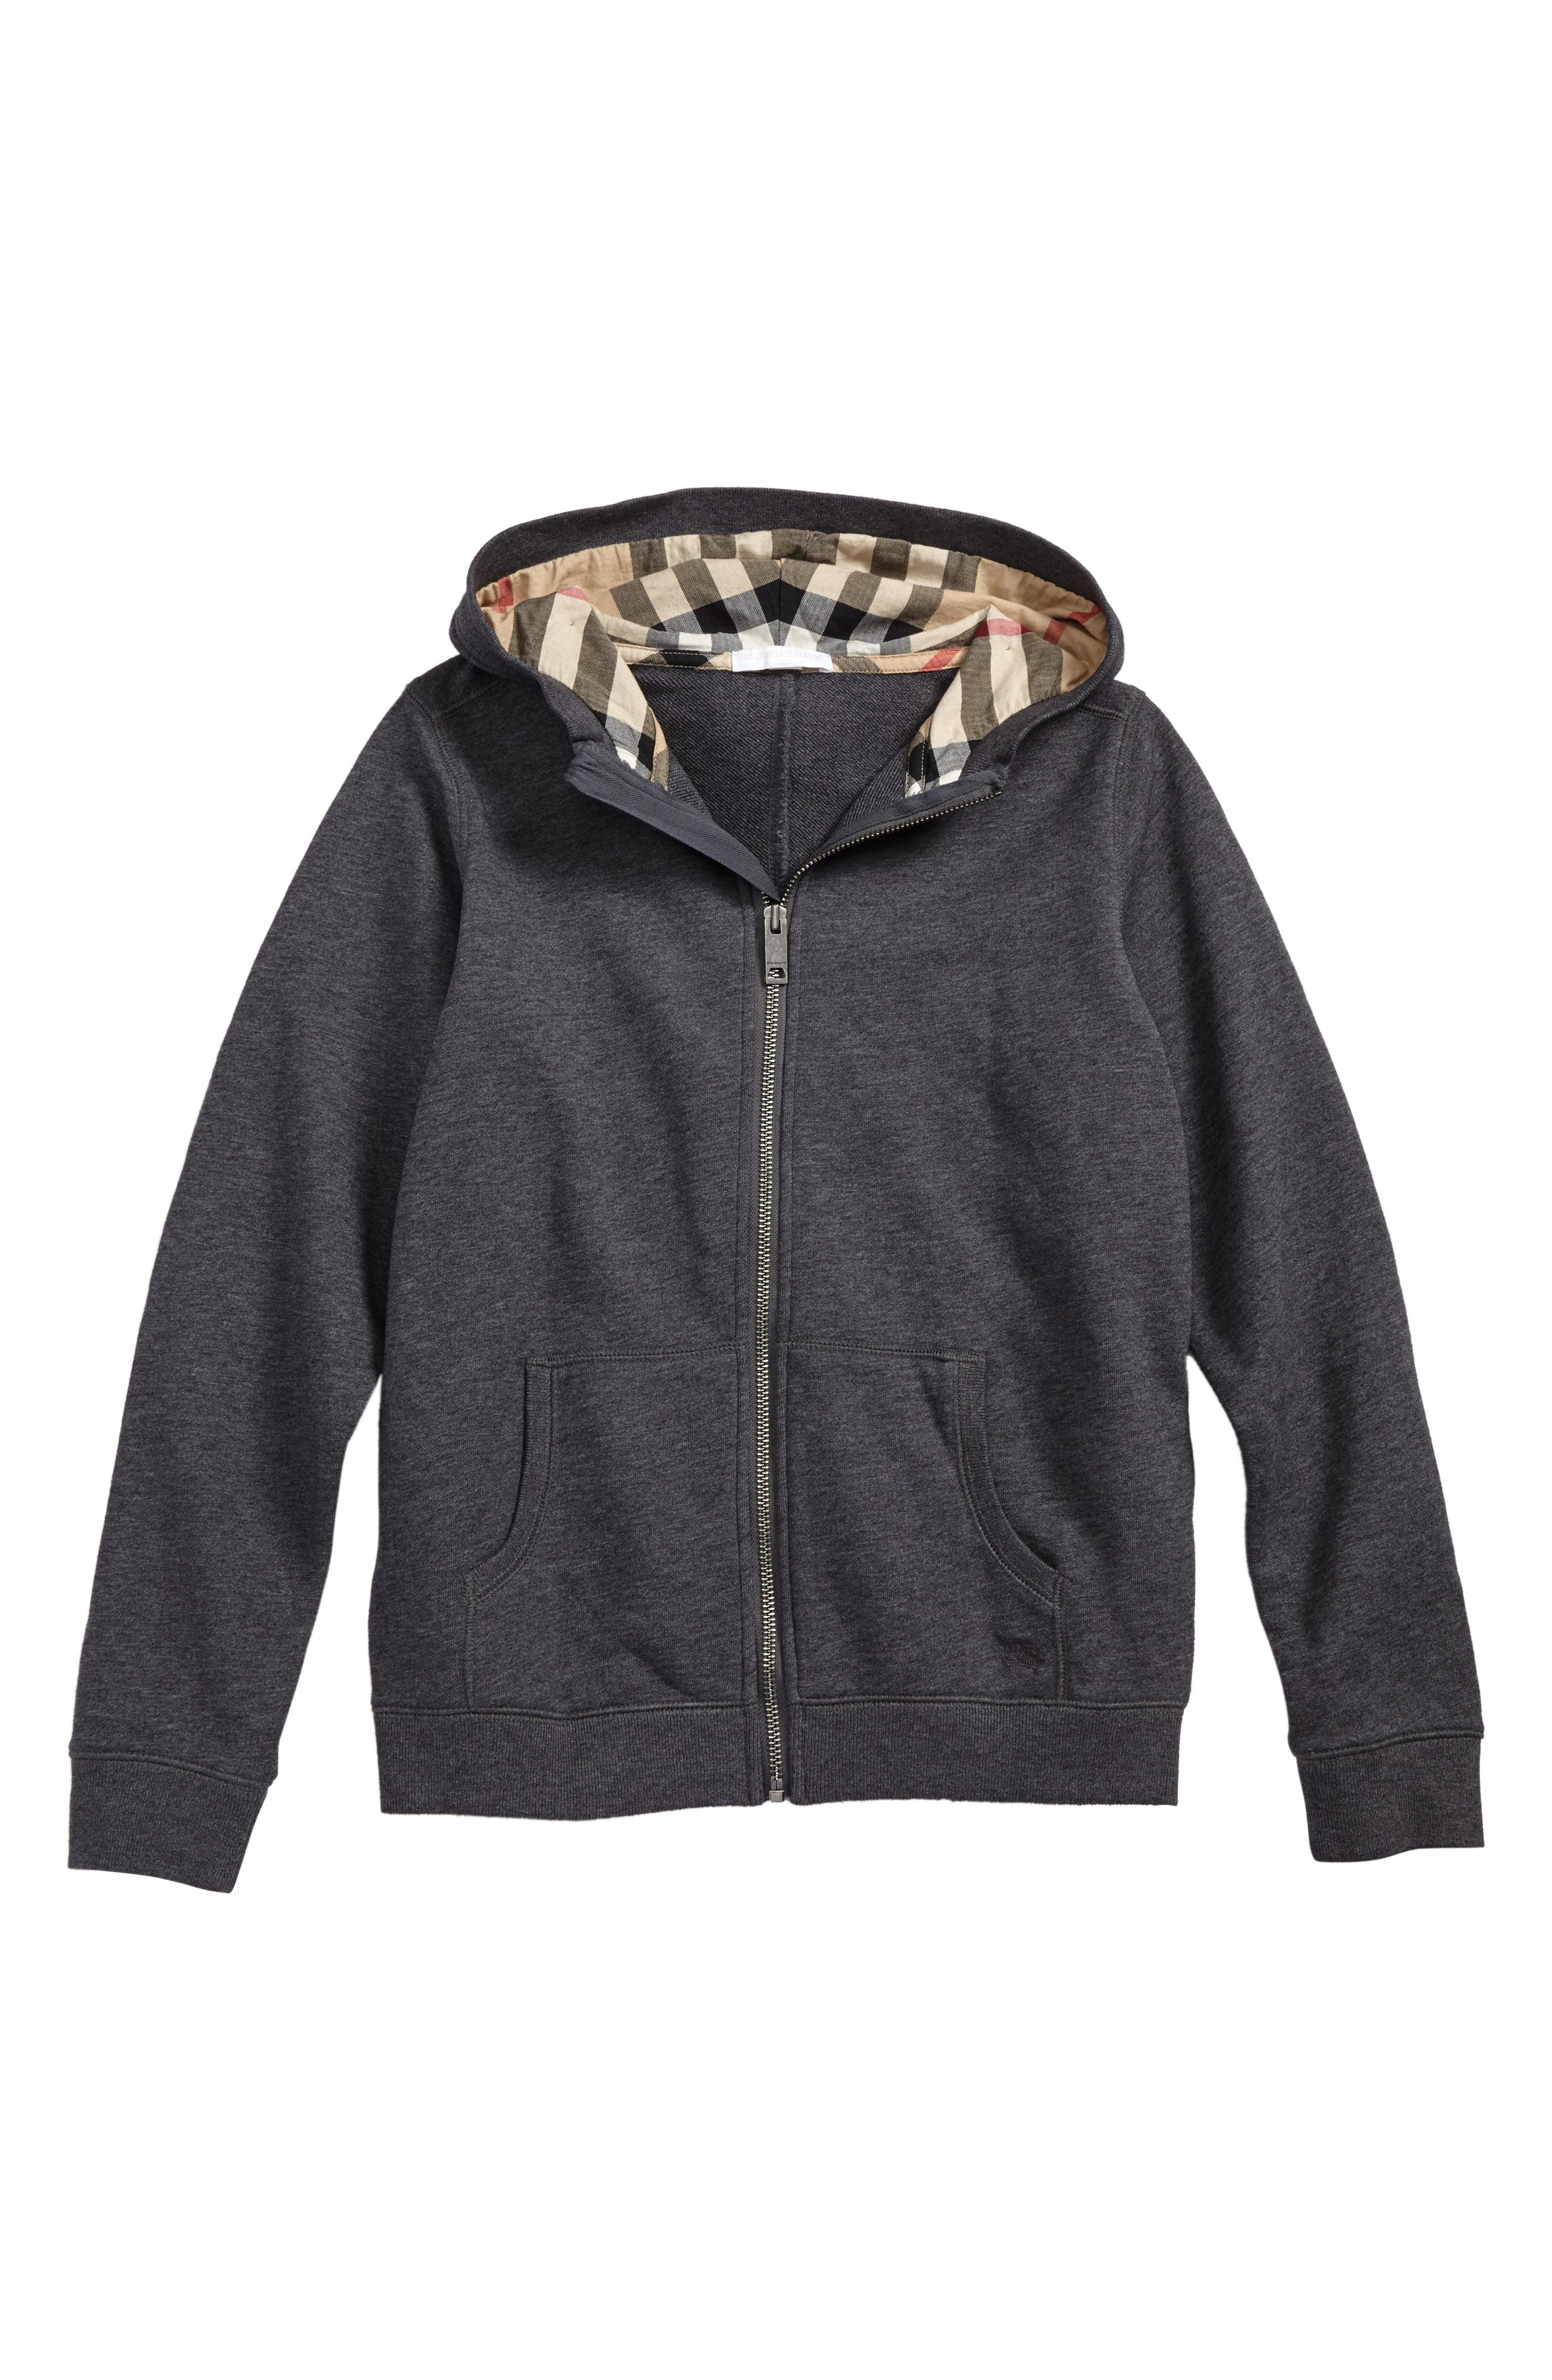 Pearcy Hoodie,                             Main thumbnail 1, color,                             027